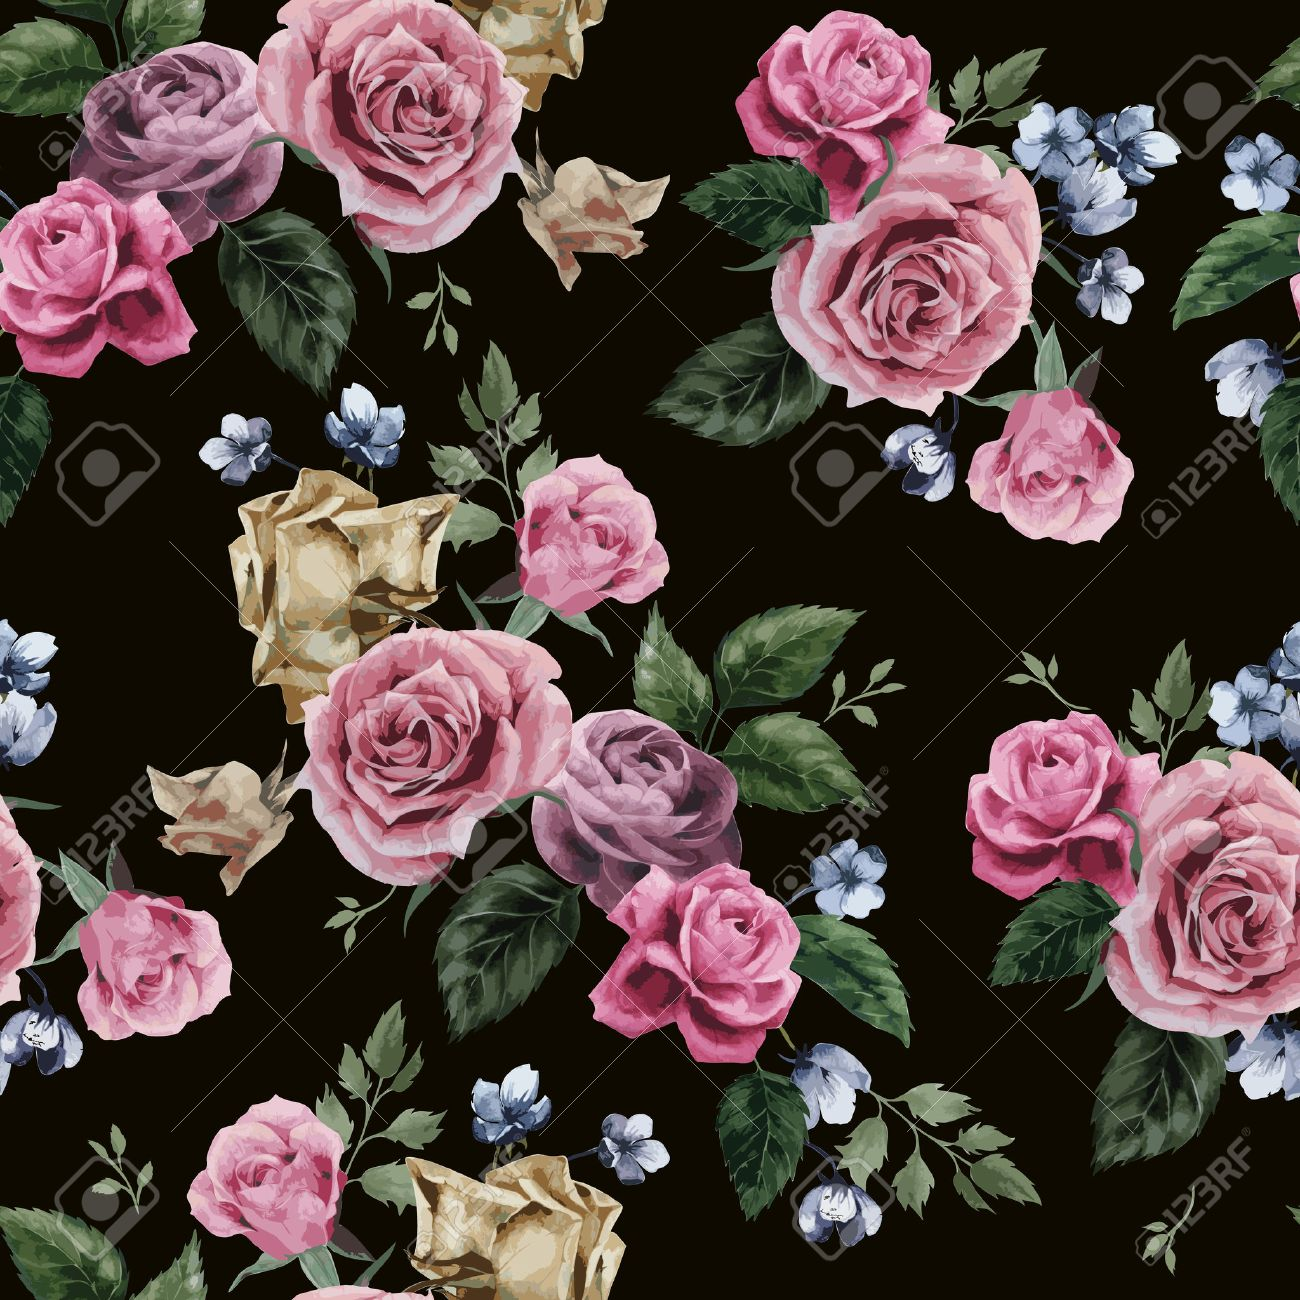 Seamless Floral Pattern With Of Pink Roses On Black Background